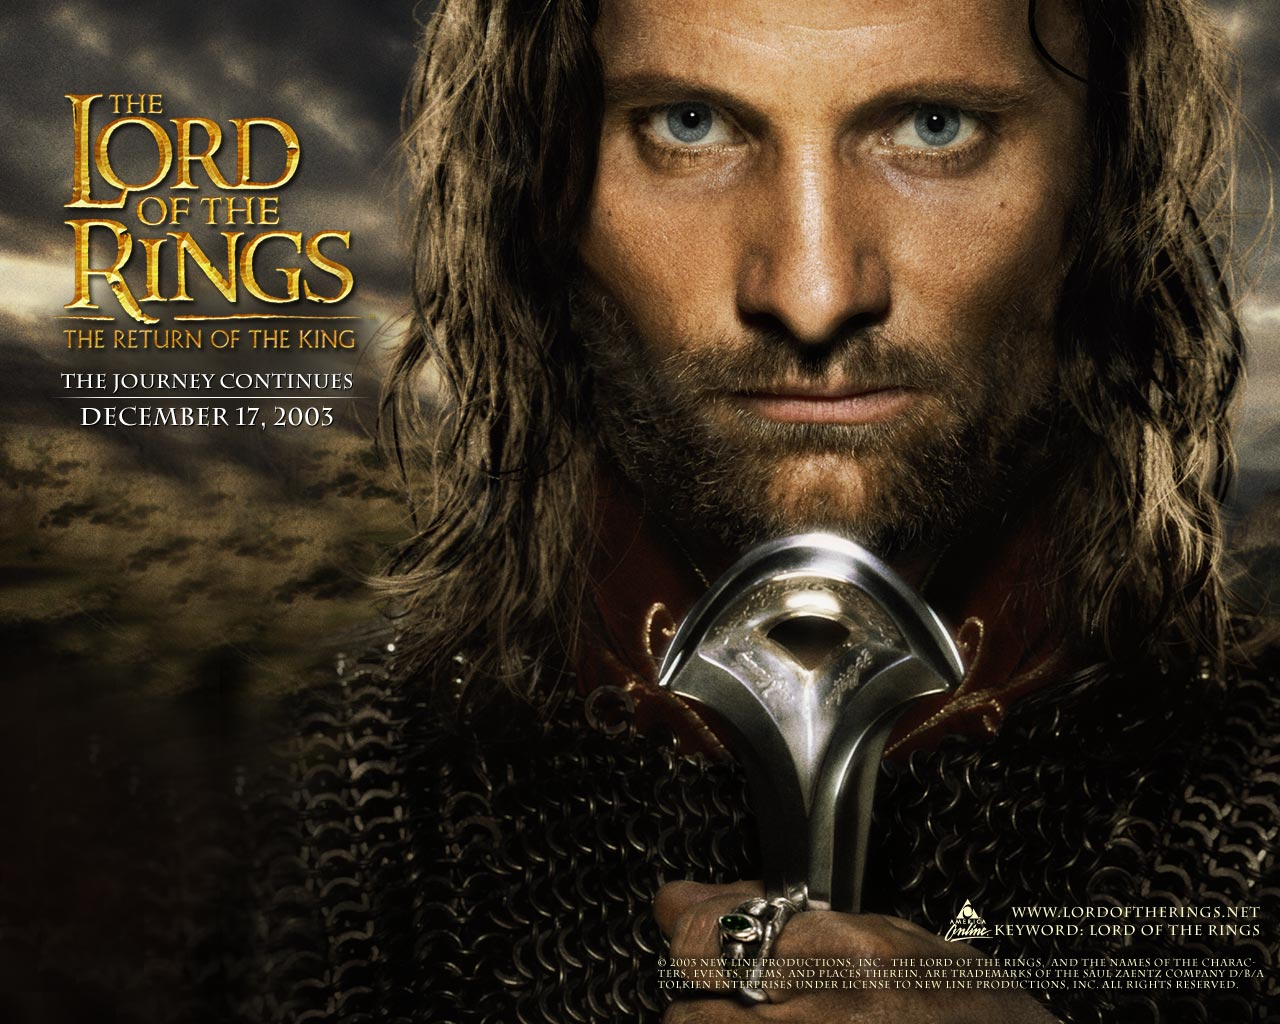 http://3.bp.blogspot.com/_zKoRF4HtZhk/TEGW7zPMvII/AAAAAAAAAeo/LbJwEA76F2Q/s1600/Viggo_Mortensen_in_The_Lord_of_the_Rings__The_Return_of_the_King_Wallpaper_3_1280.jpg